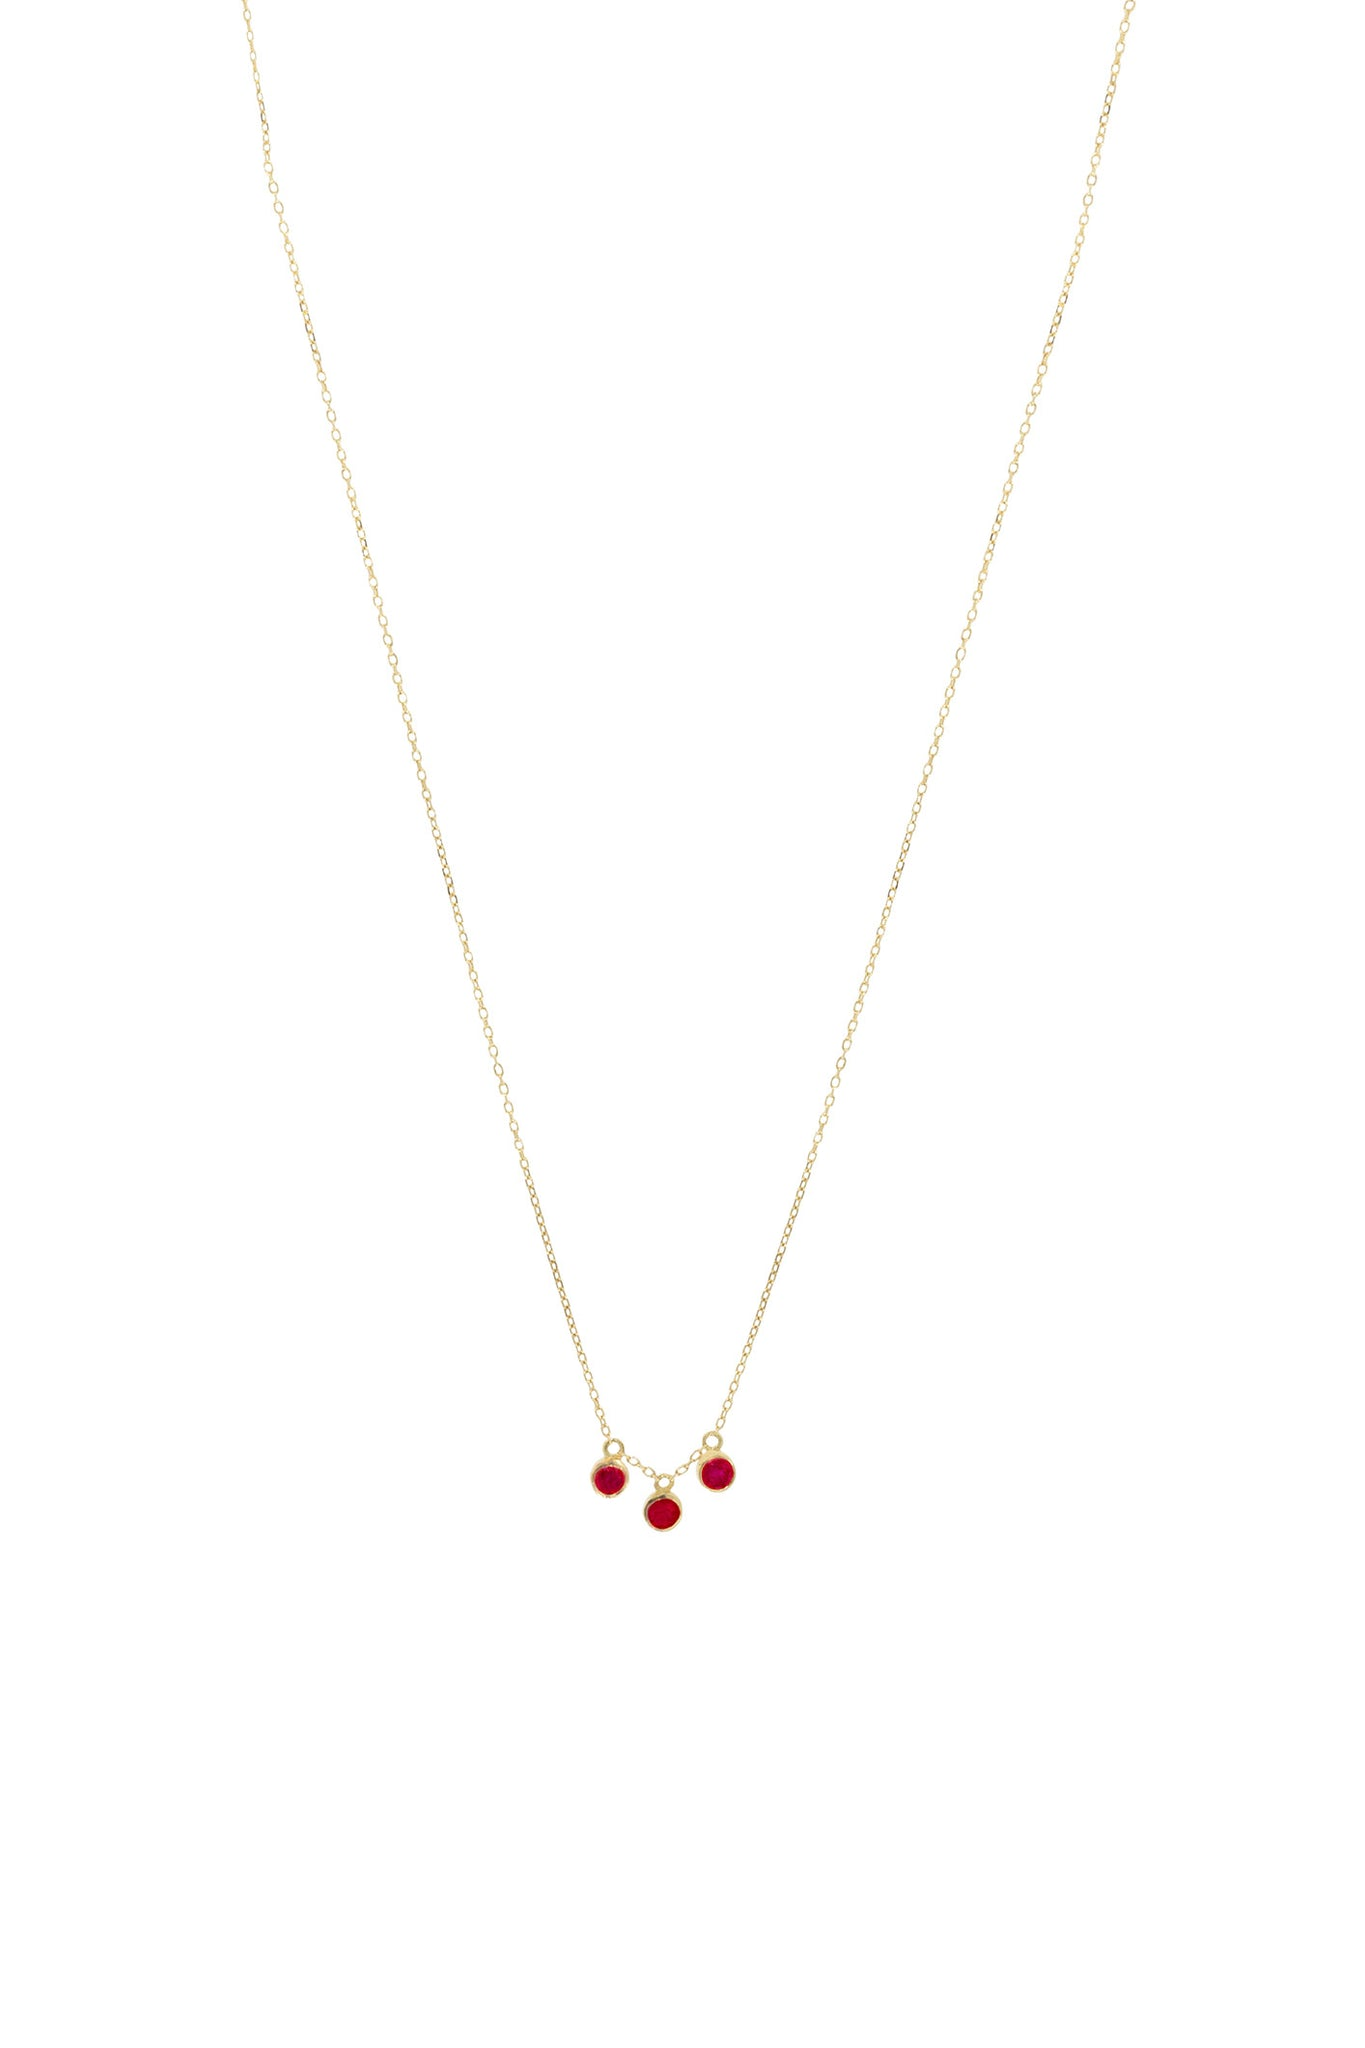 PRINCE RUBY NECKLACE